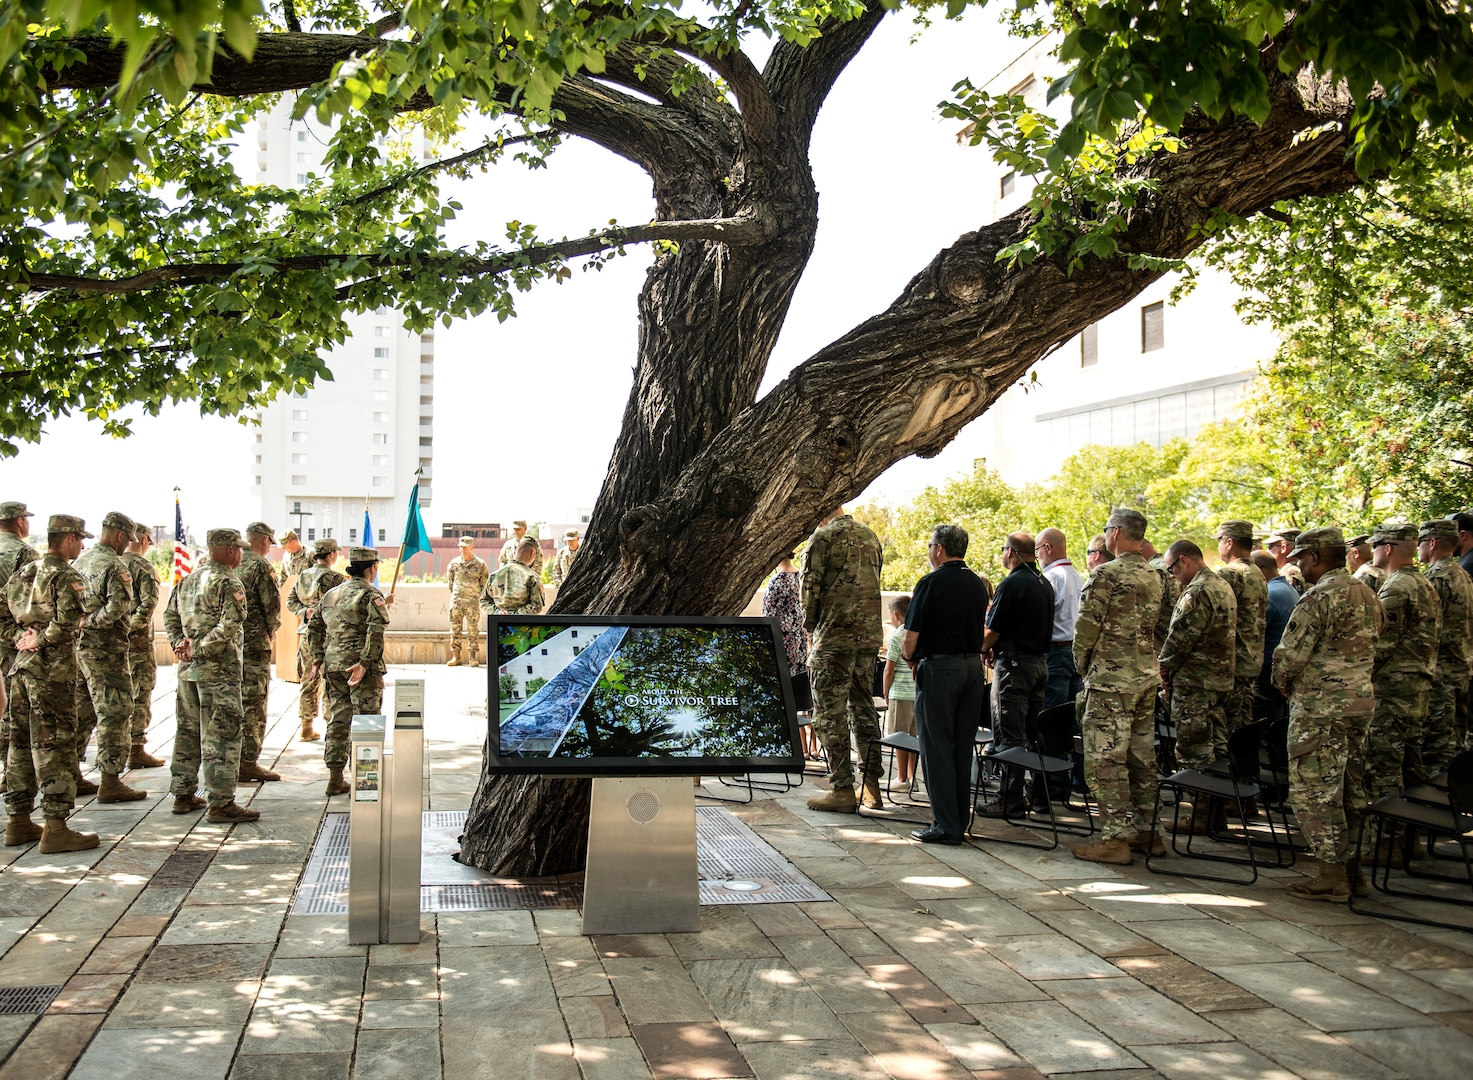 Members of the Oklahoma National Guard, community partners and family members gather around the Murrah Bombing Survivor Tree during a change of command ceremony at the Oklahoma City National Memorial and Museum in Oklahoma City, Sept. 1, 2021.  The 63rd CST is designed to provide a specialized response to chemical, biological, radiological or nuclear incidents at the authorization and direction of the Governor.